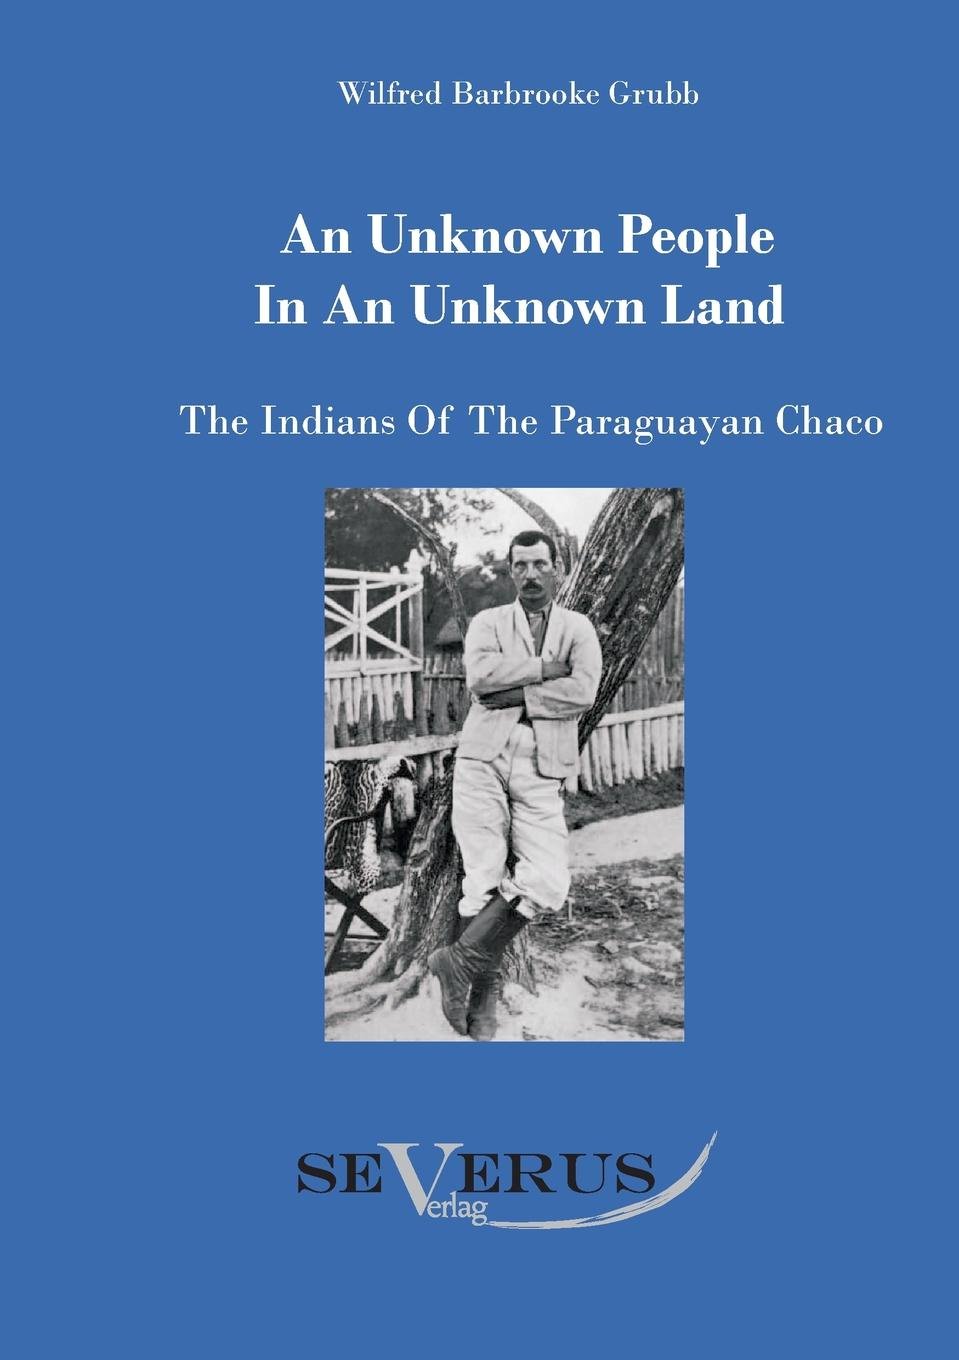 Wilfried Barbrooke Grubb An Unknown People in an Unknown Land. The Indians of the Paraguayan Chaco dobrizhoffer martin an account of the abipones an equestrian people of paraguay 2 of 3